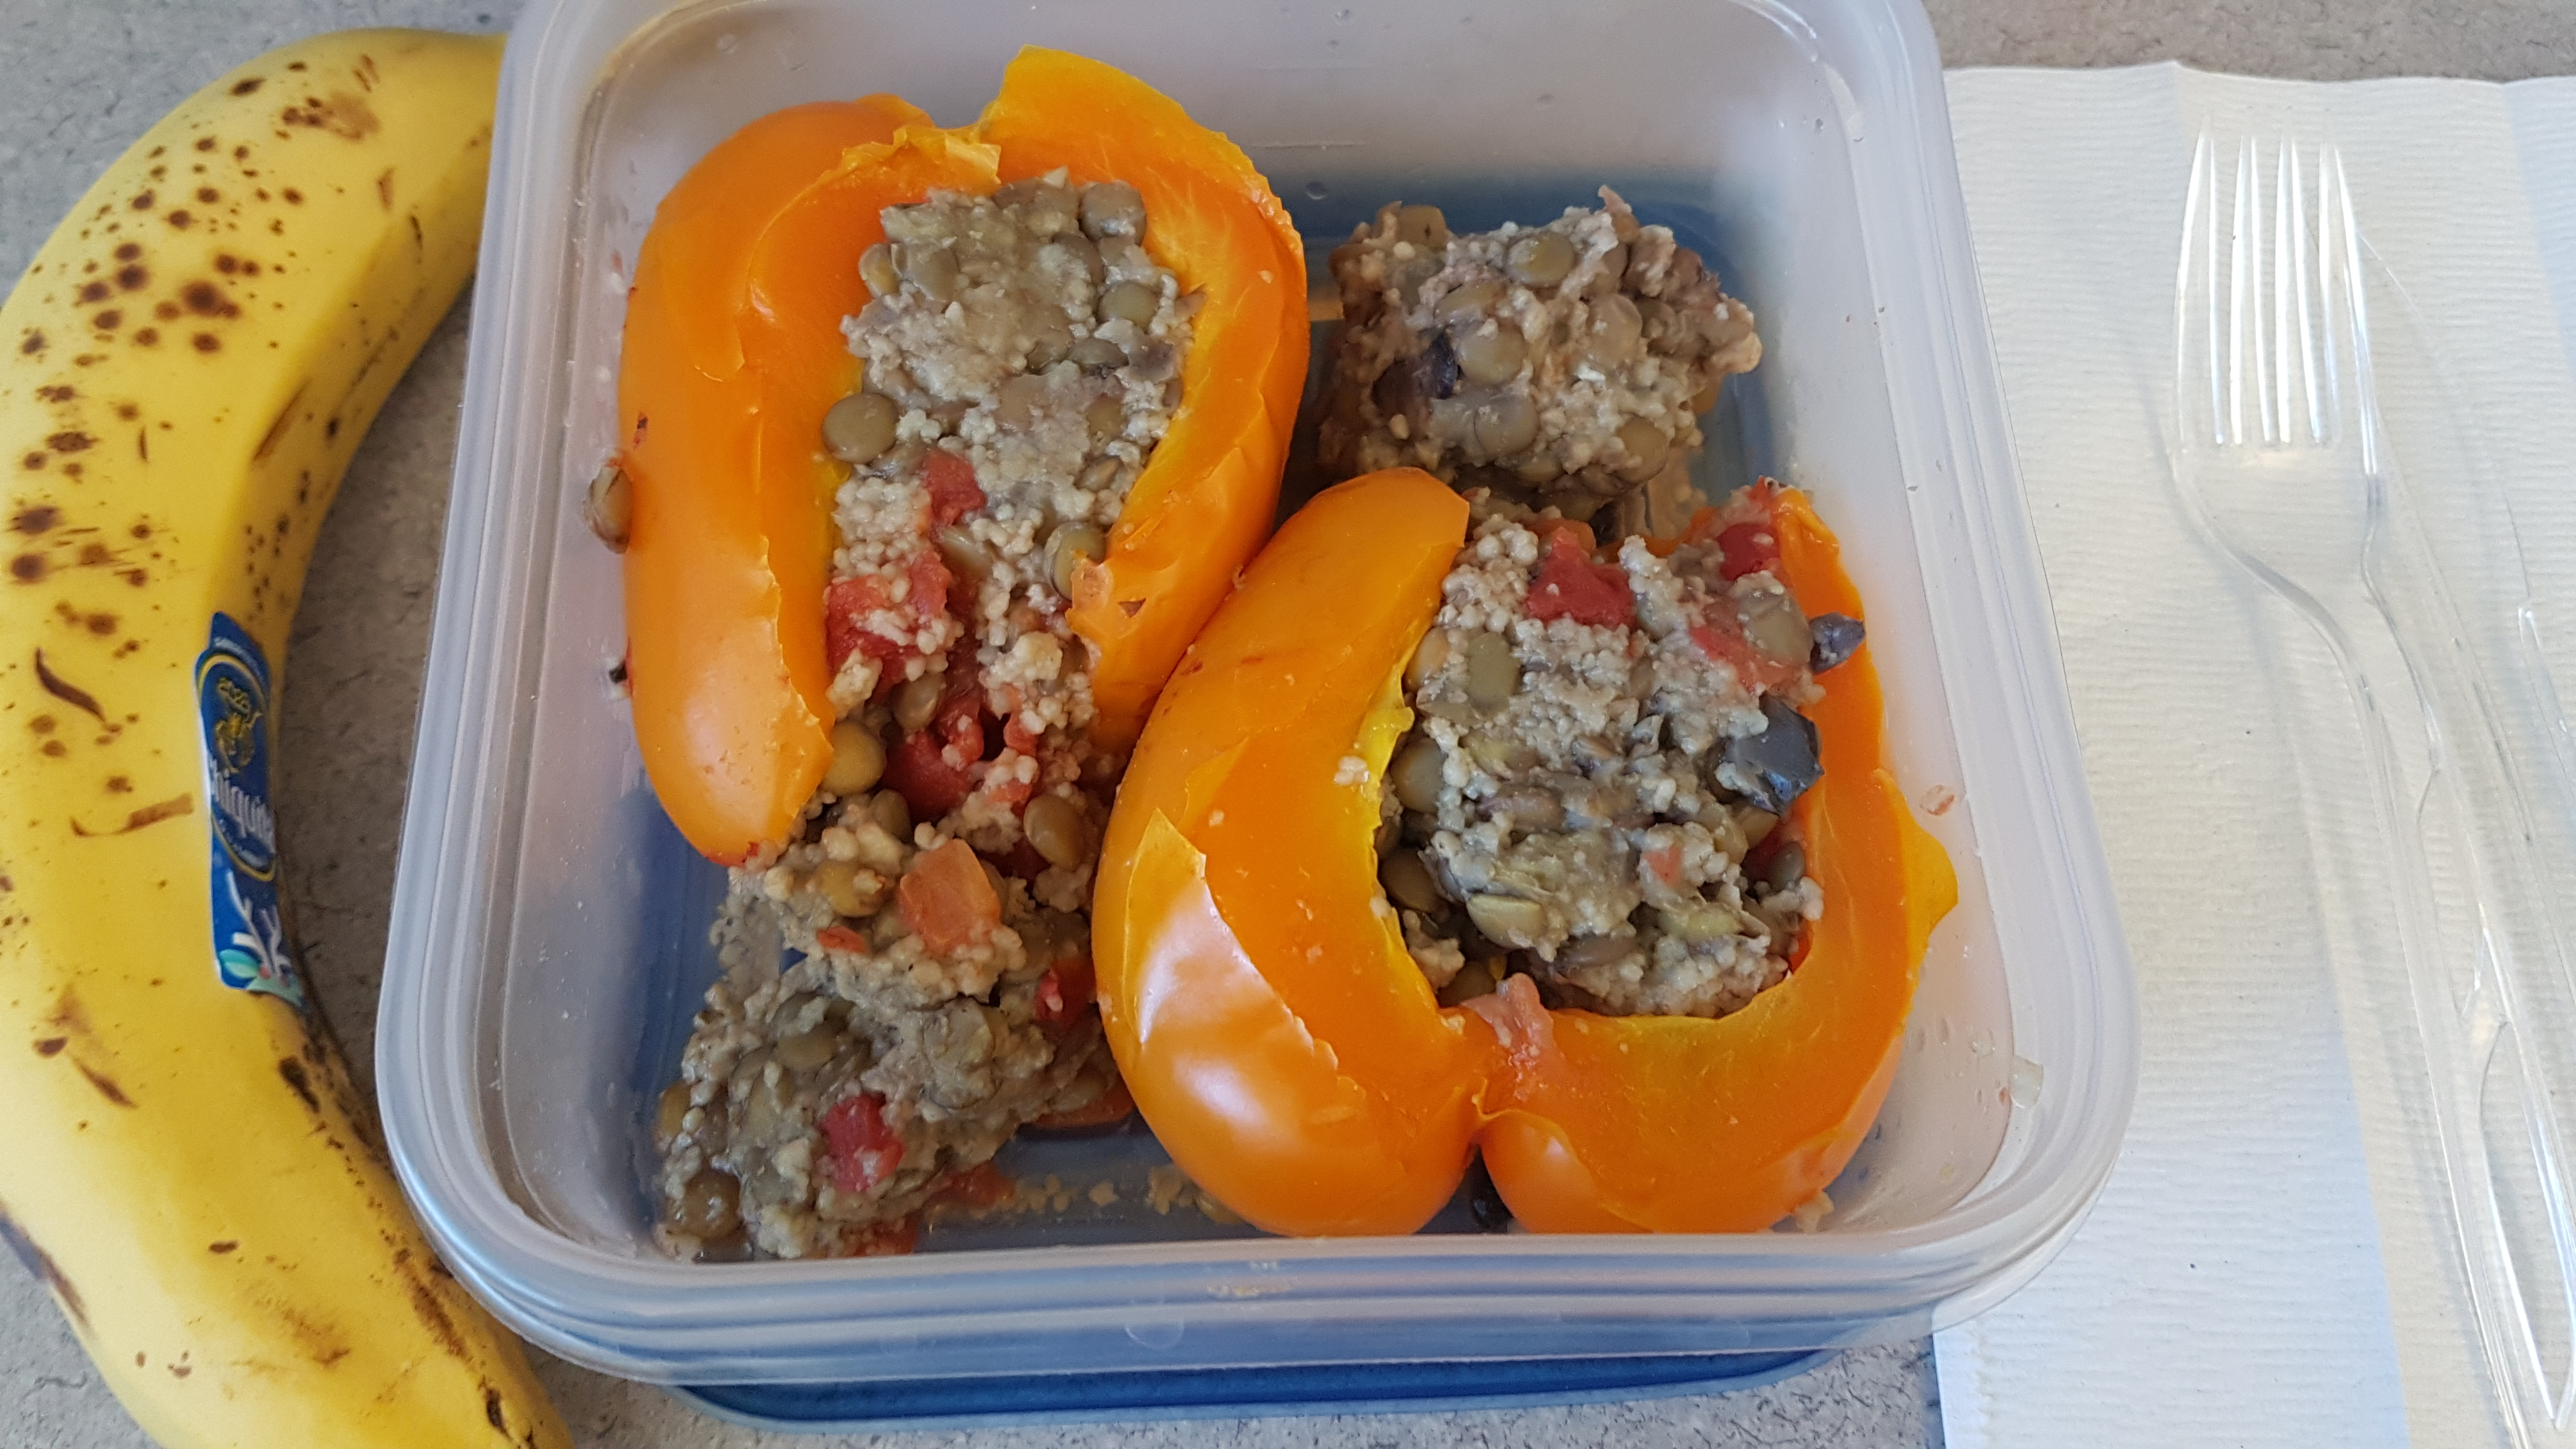 stuffed bell pepper and a banana